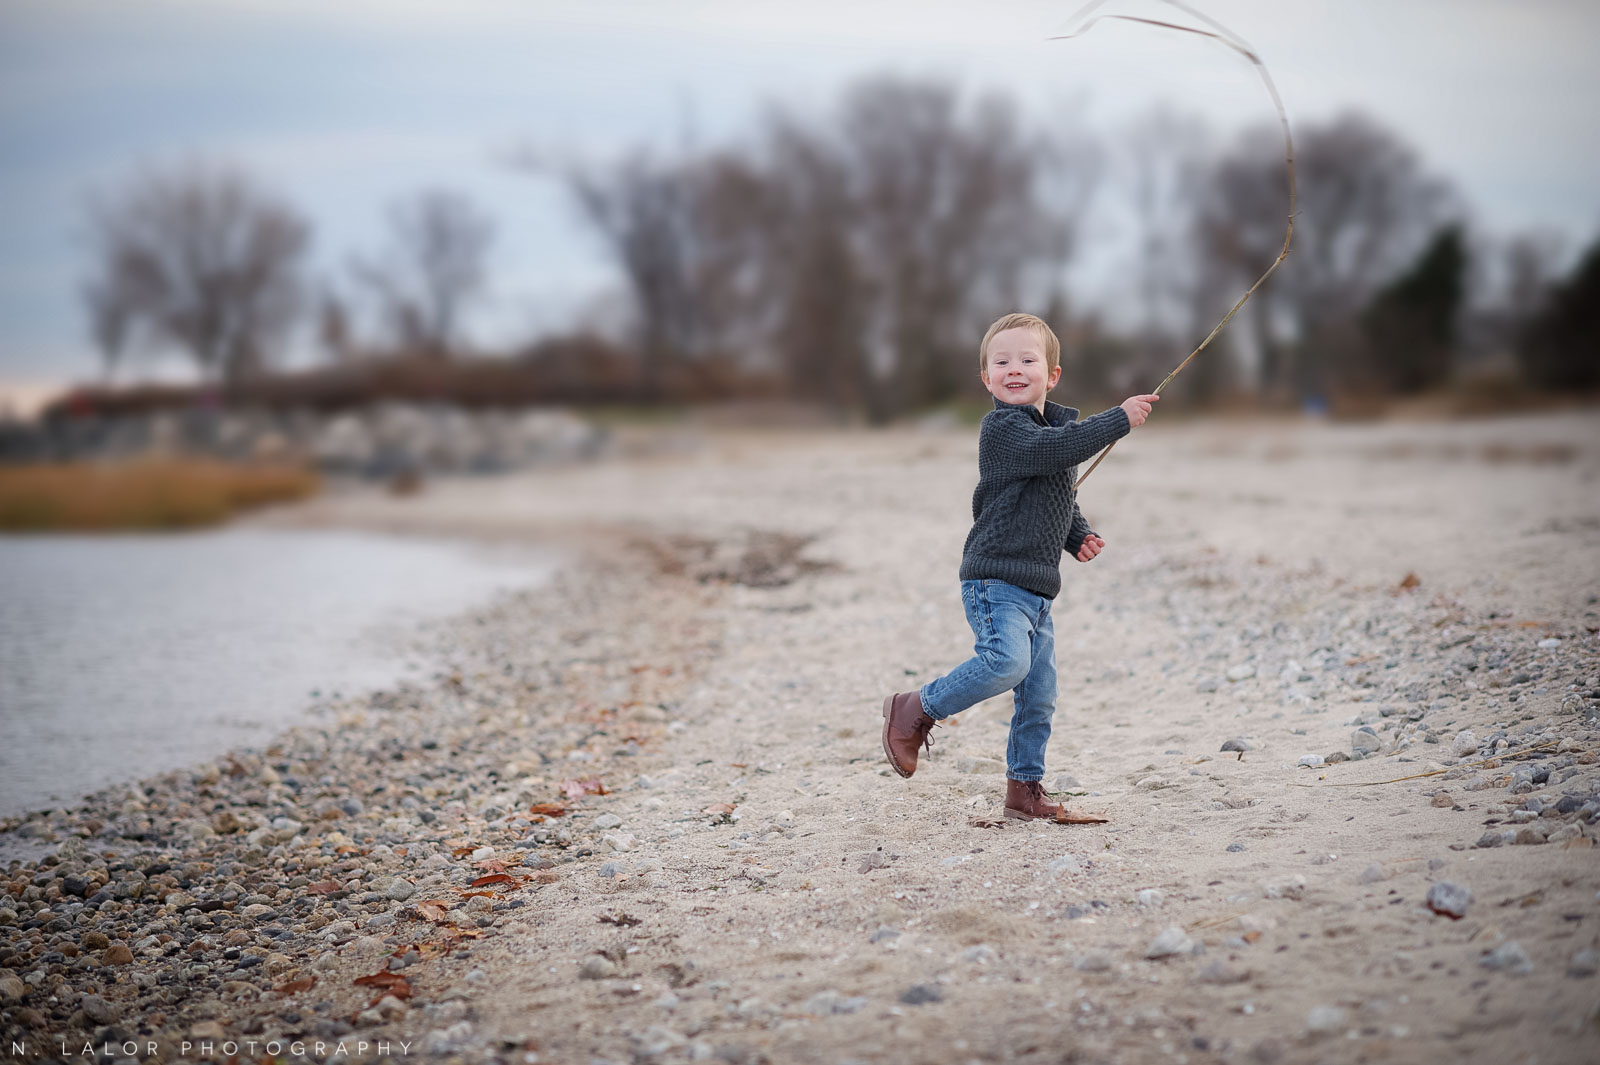 nlalor-photography-120613-styled-boy-winter-beach-session-old-greenwich-9.jpg